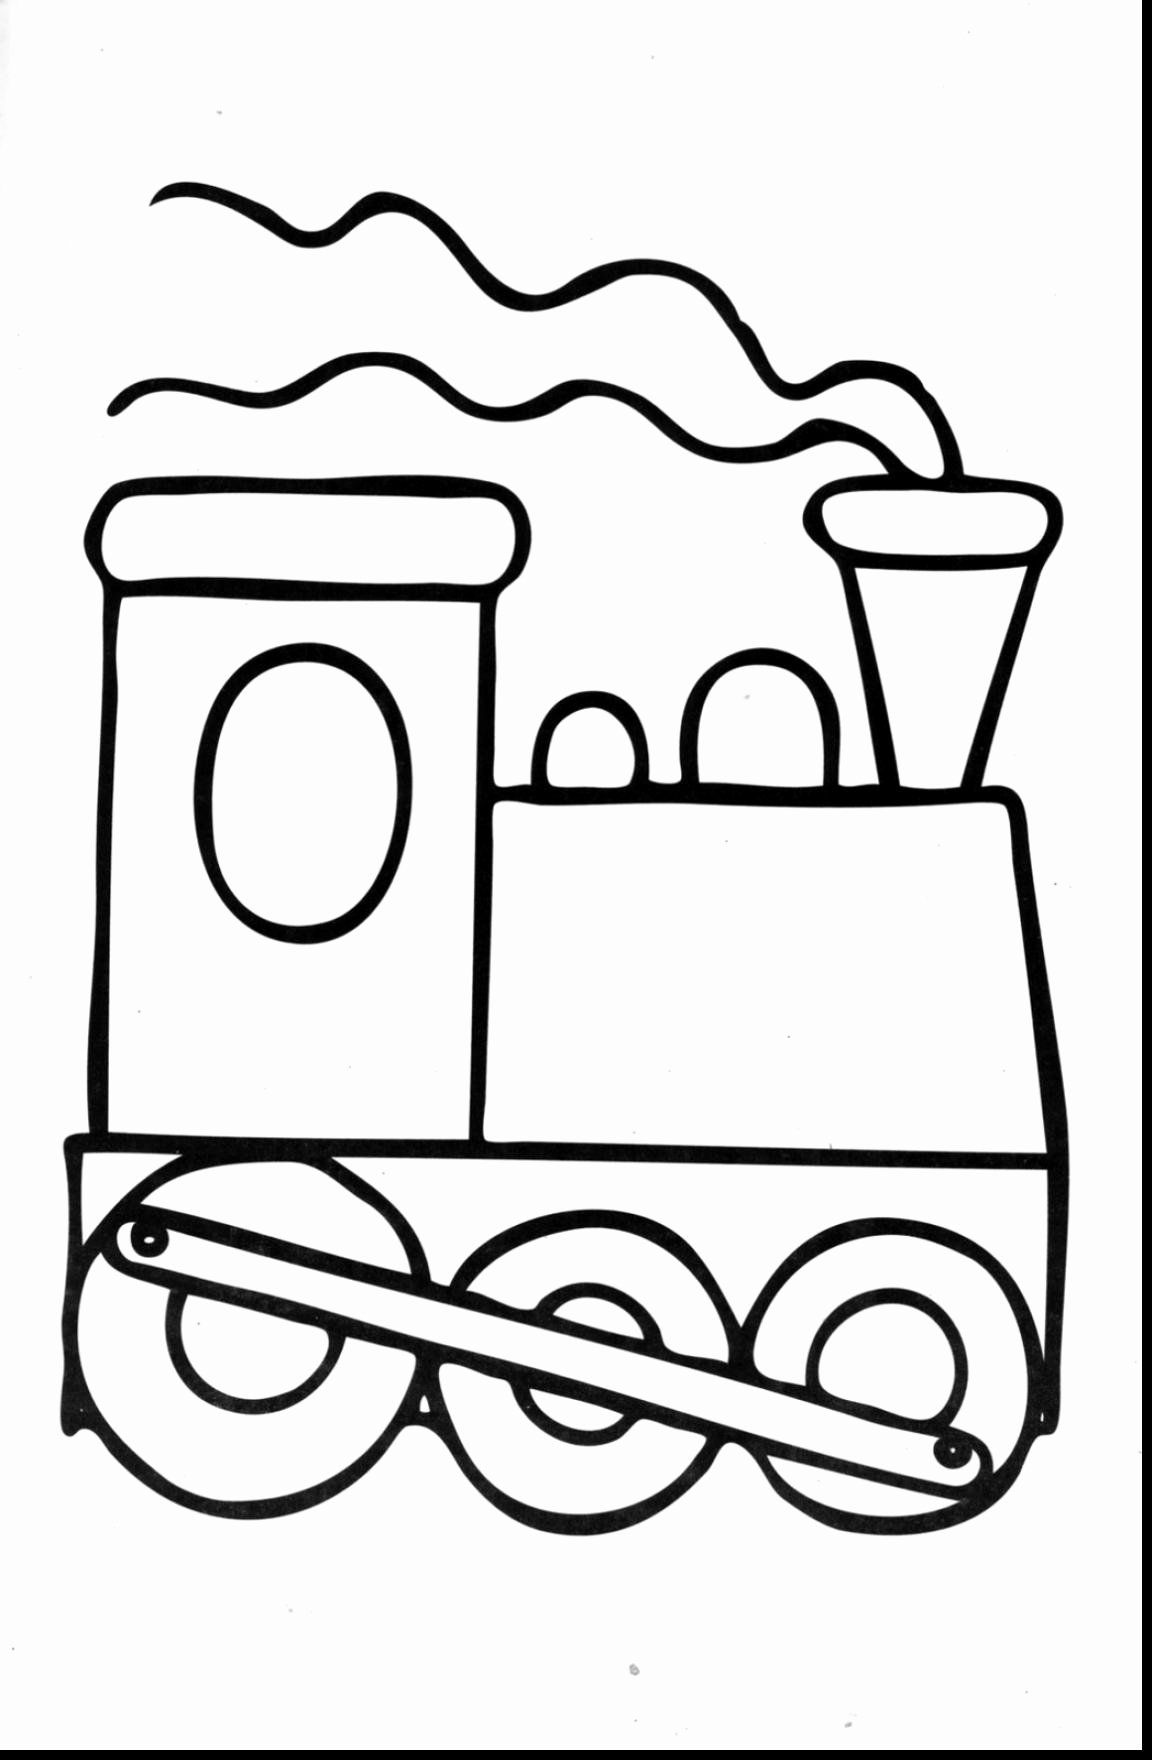 Alphabet Coloring Pages Preschoolers Beautiful Coloring Pages Train Coloring For Preschoolers Train Coloring Pages Alphabet Coloring Pages Easy Coloring Pages